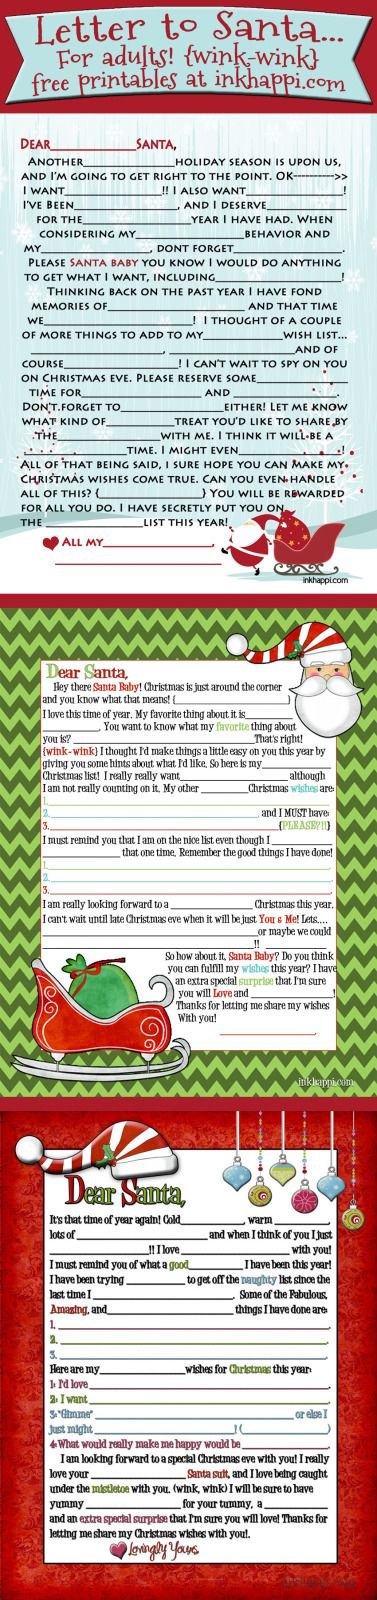 Adult Santa letter {wink-wink} Mad lib style! This includes 2012. 2013, and now 2014 versions!!